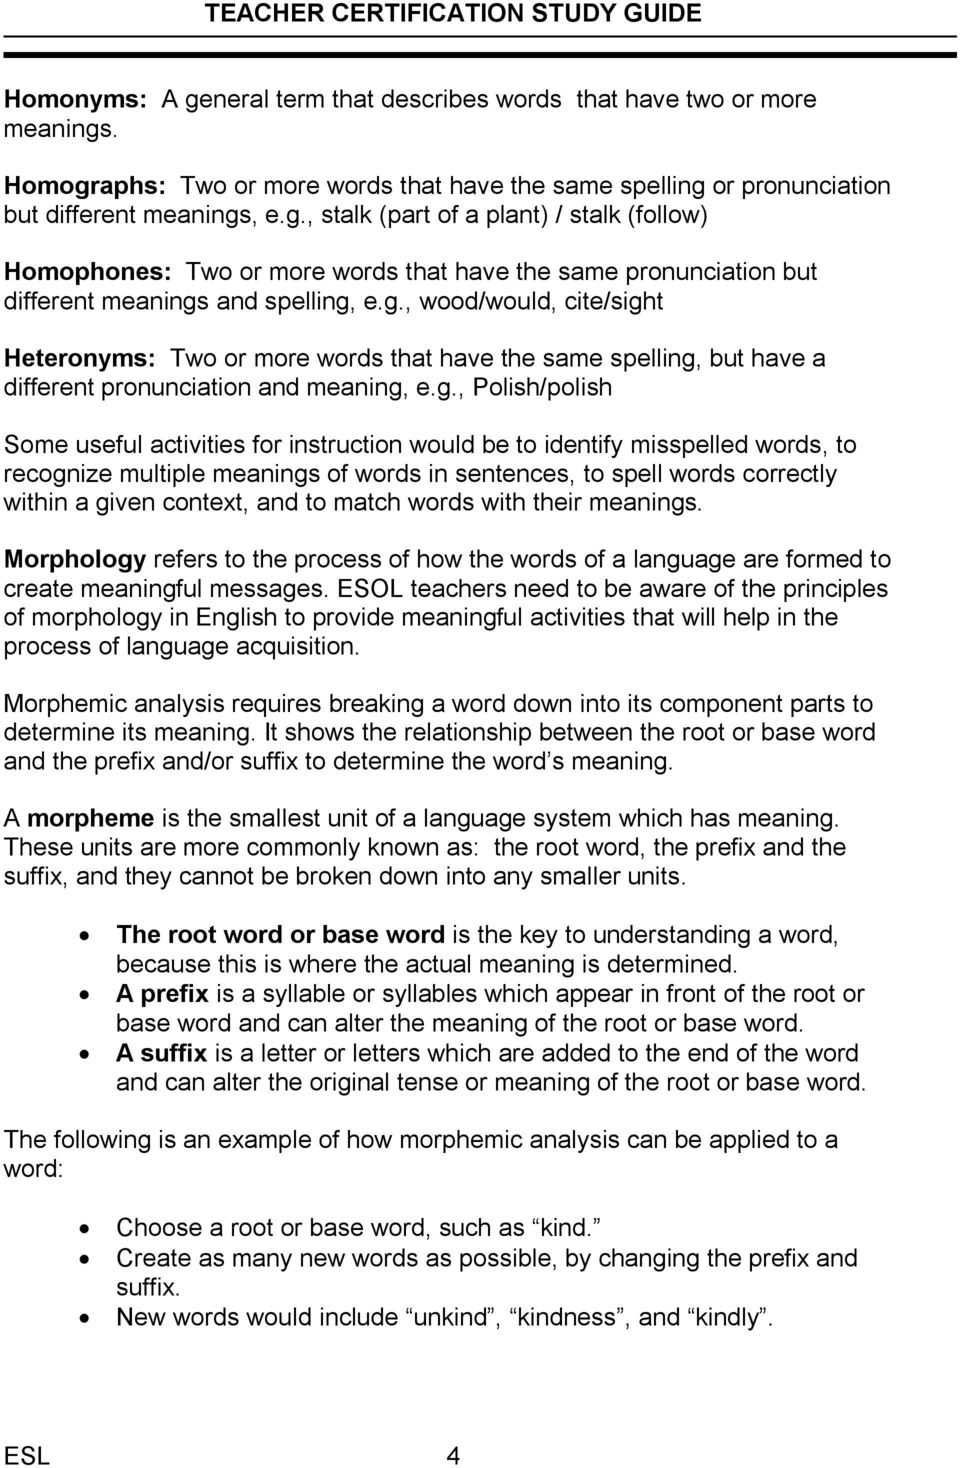 be to identify misspelled words, to recognize multiple meanings of words in sentences, to spell words correctly within a given context, and to match words with their meanings.